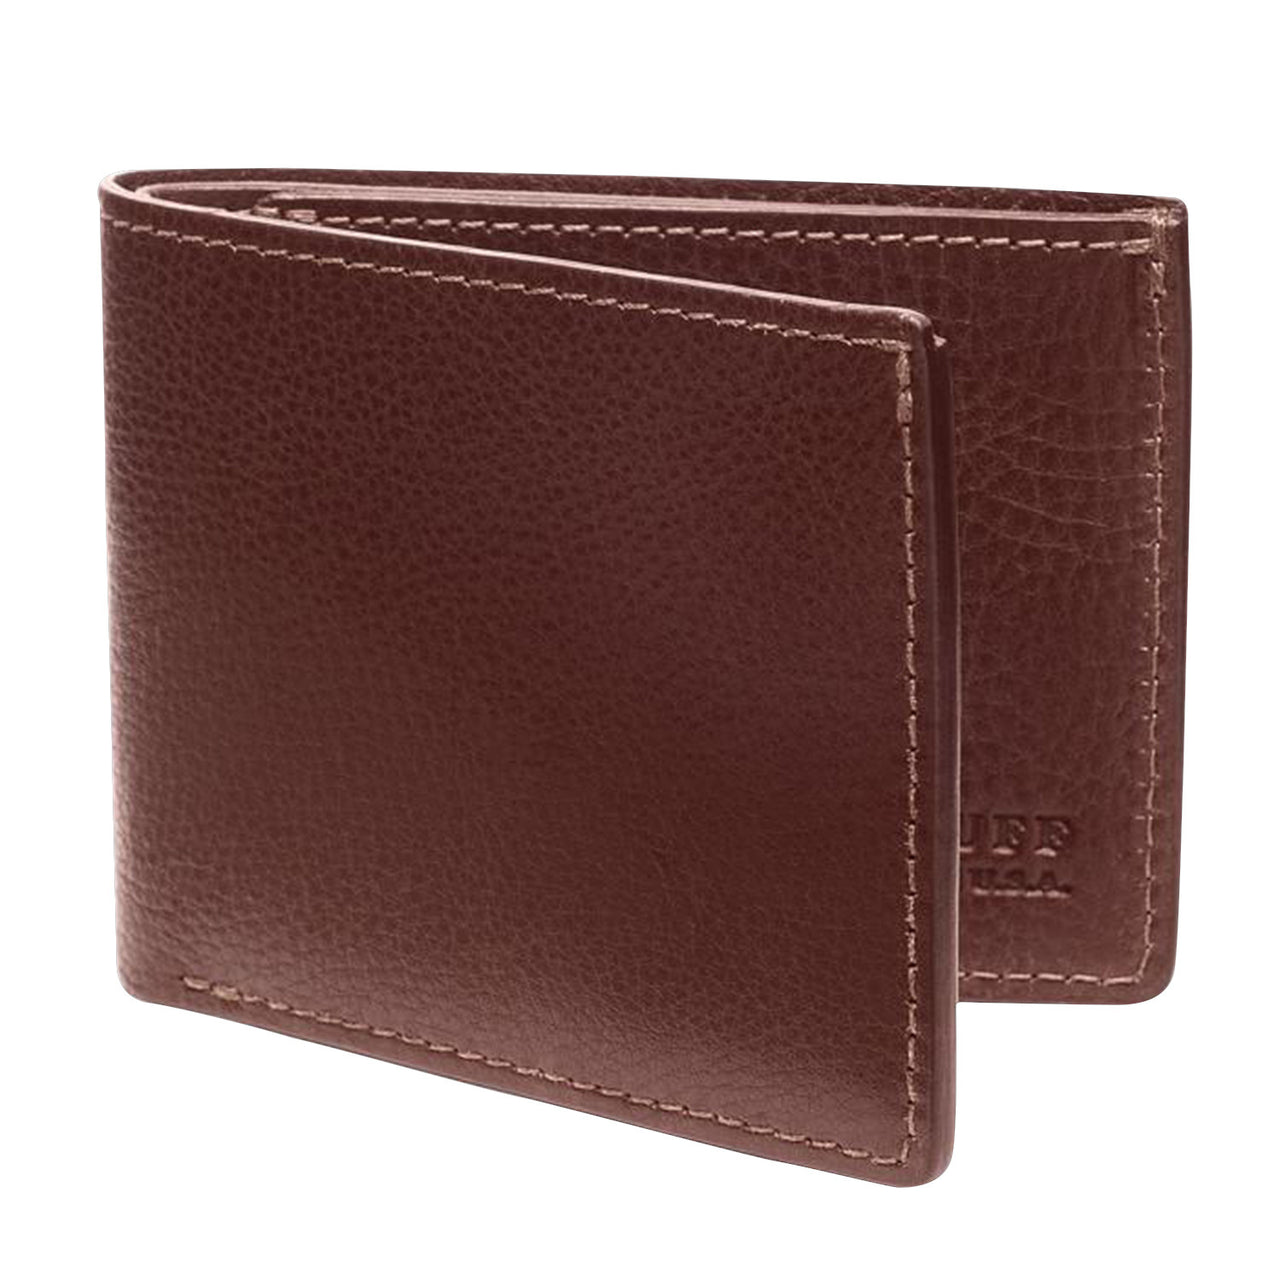 Two-Pocket Leather Bifold Wallet, Chestnut